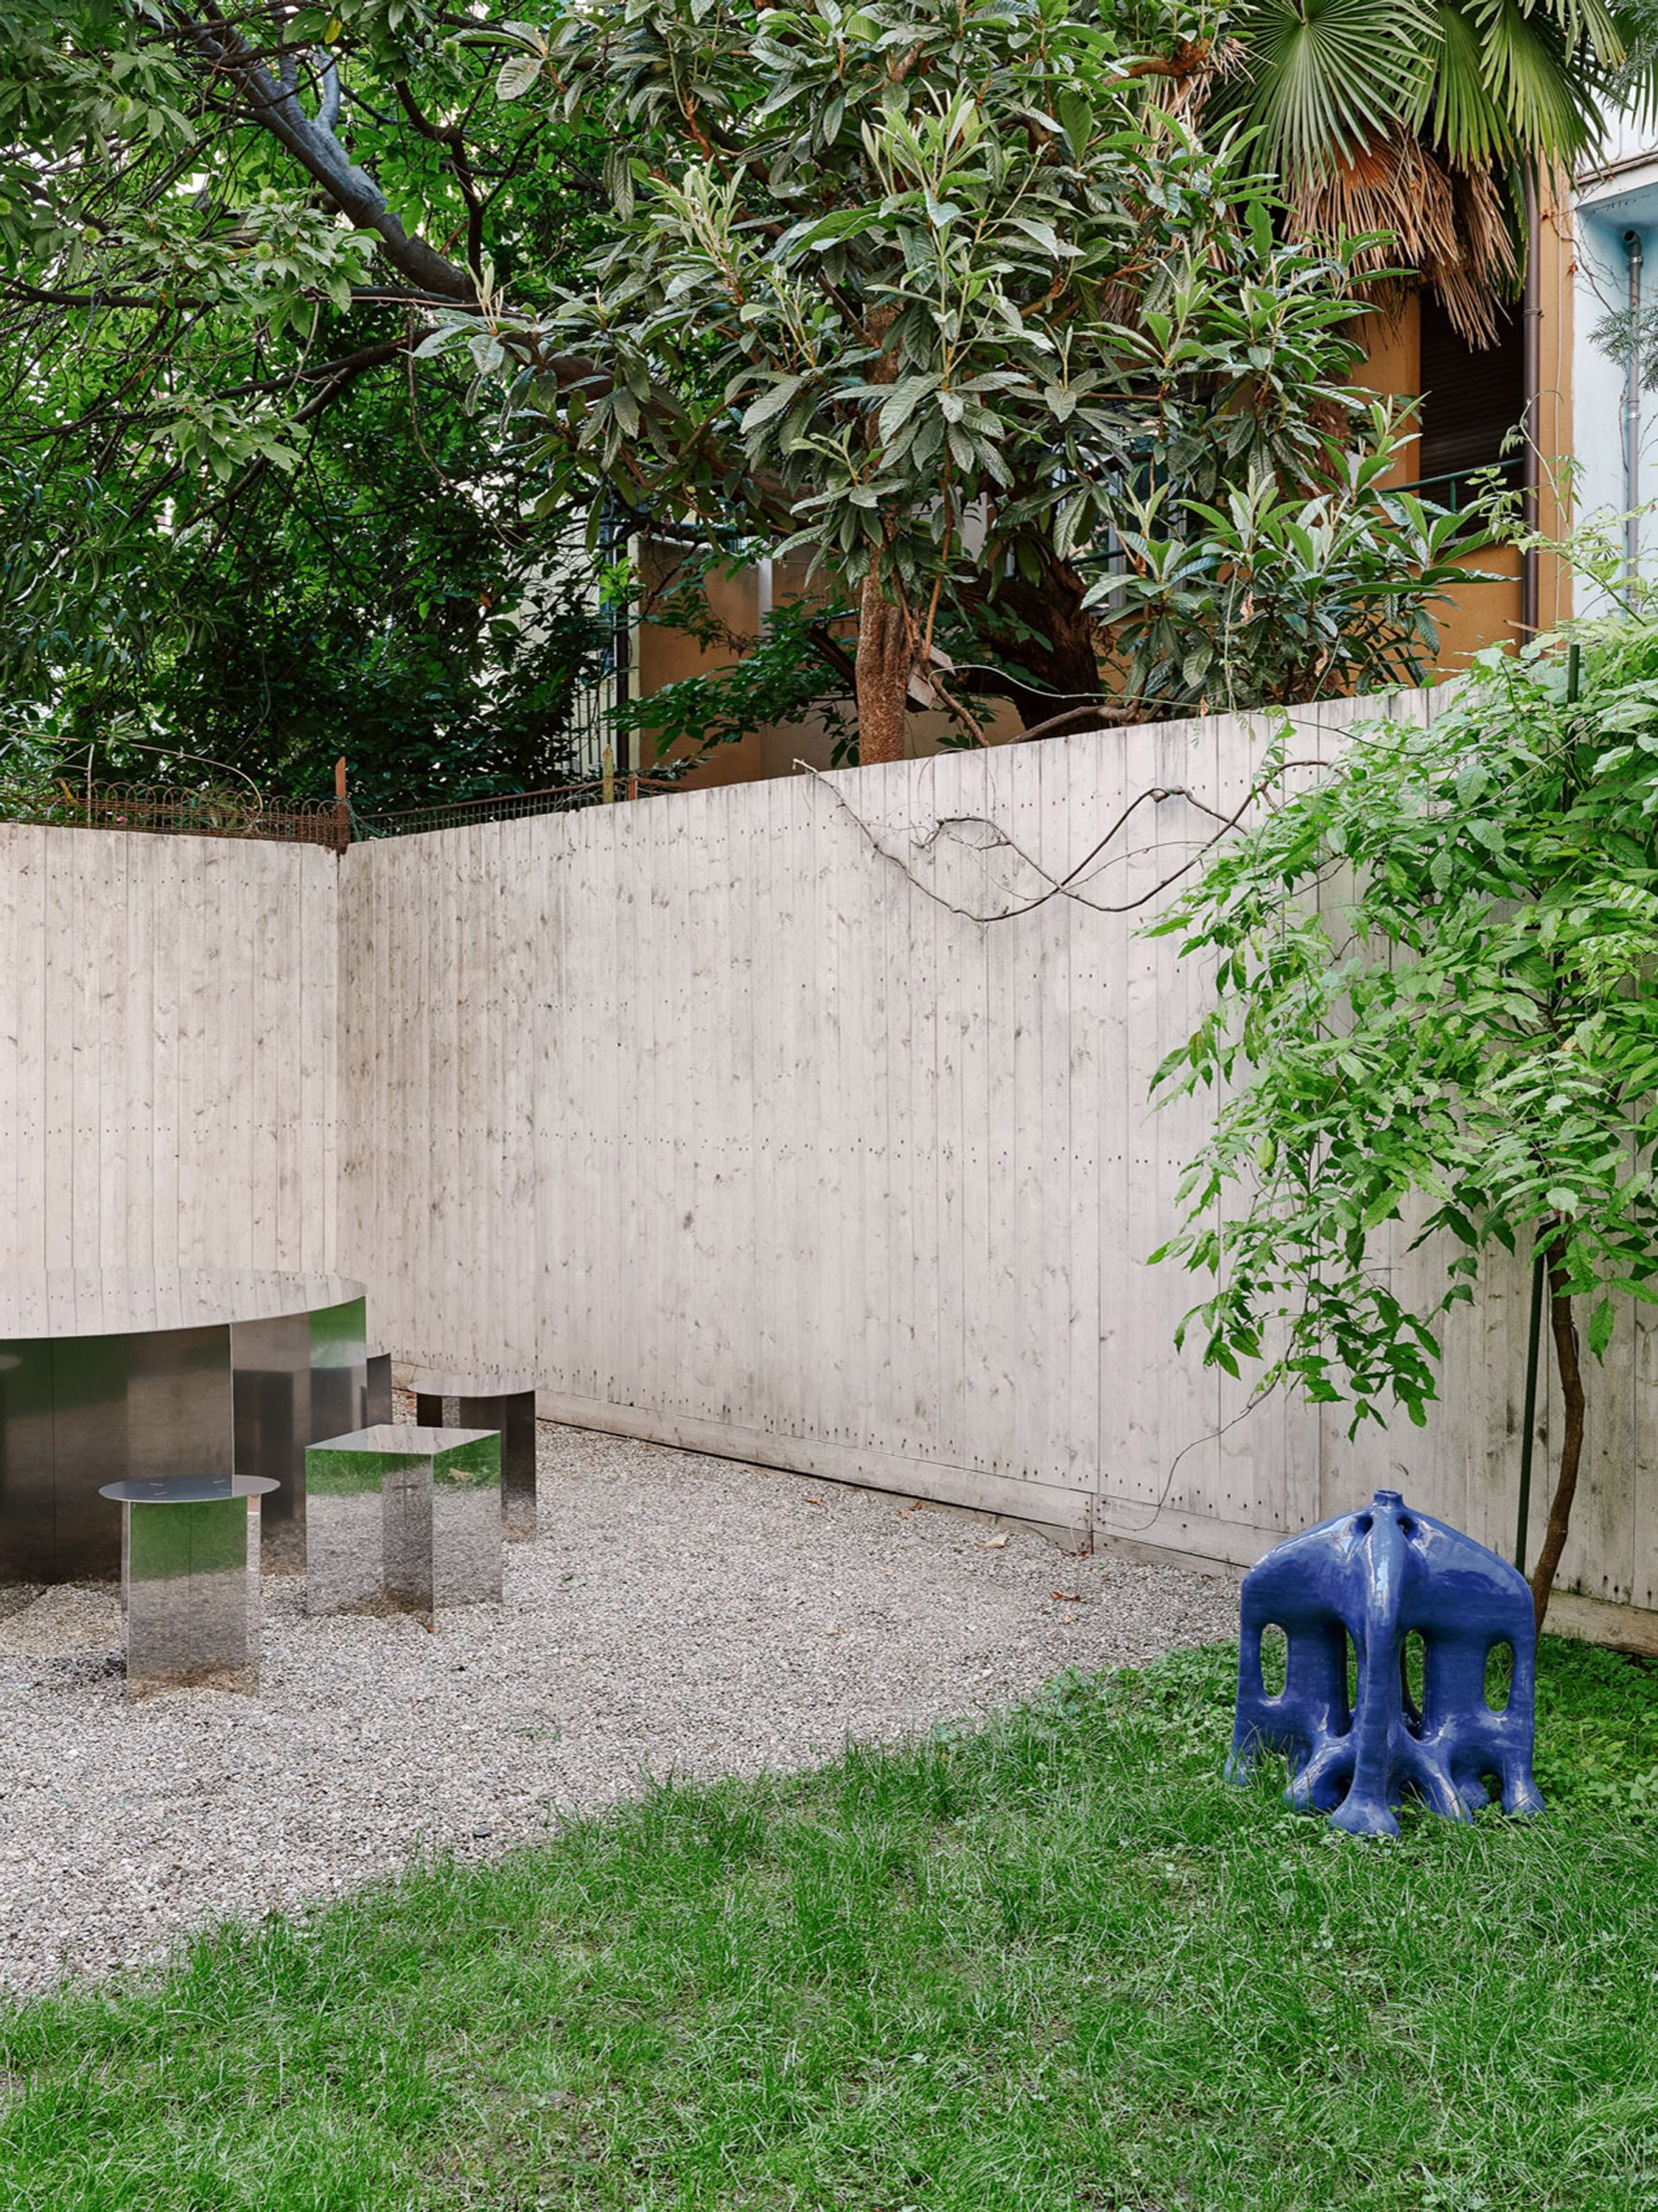 The Sunnei Palazzina courtyard includes furniture and art